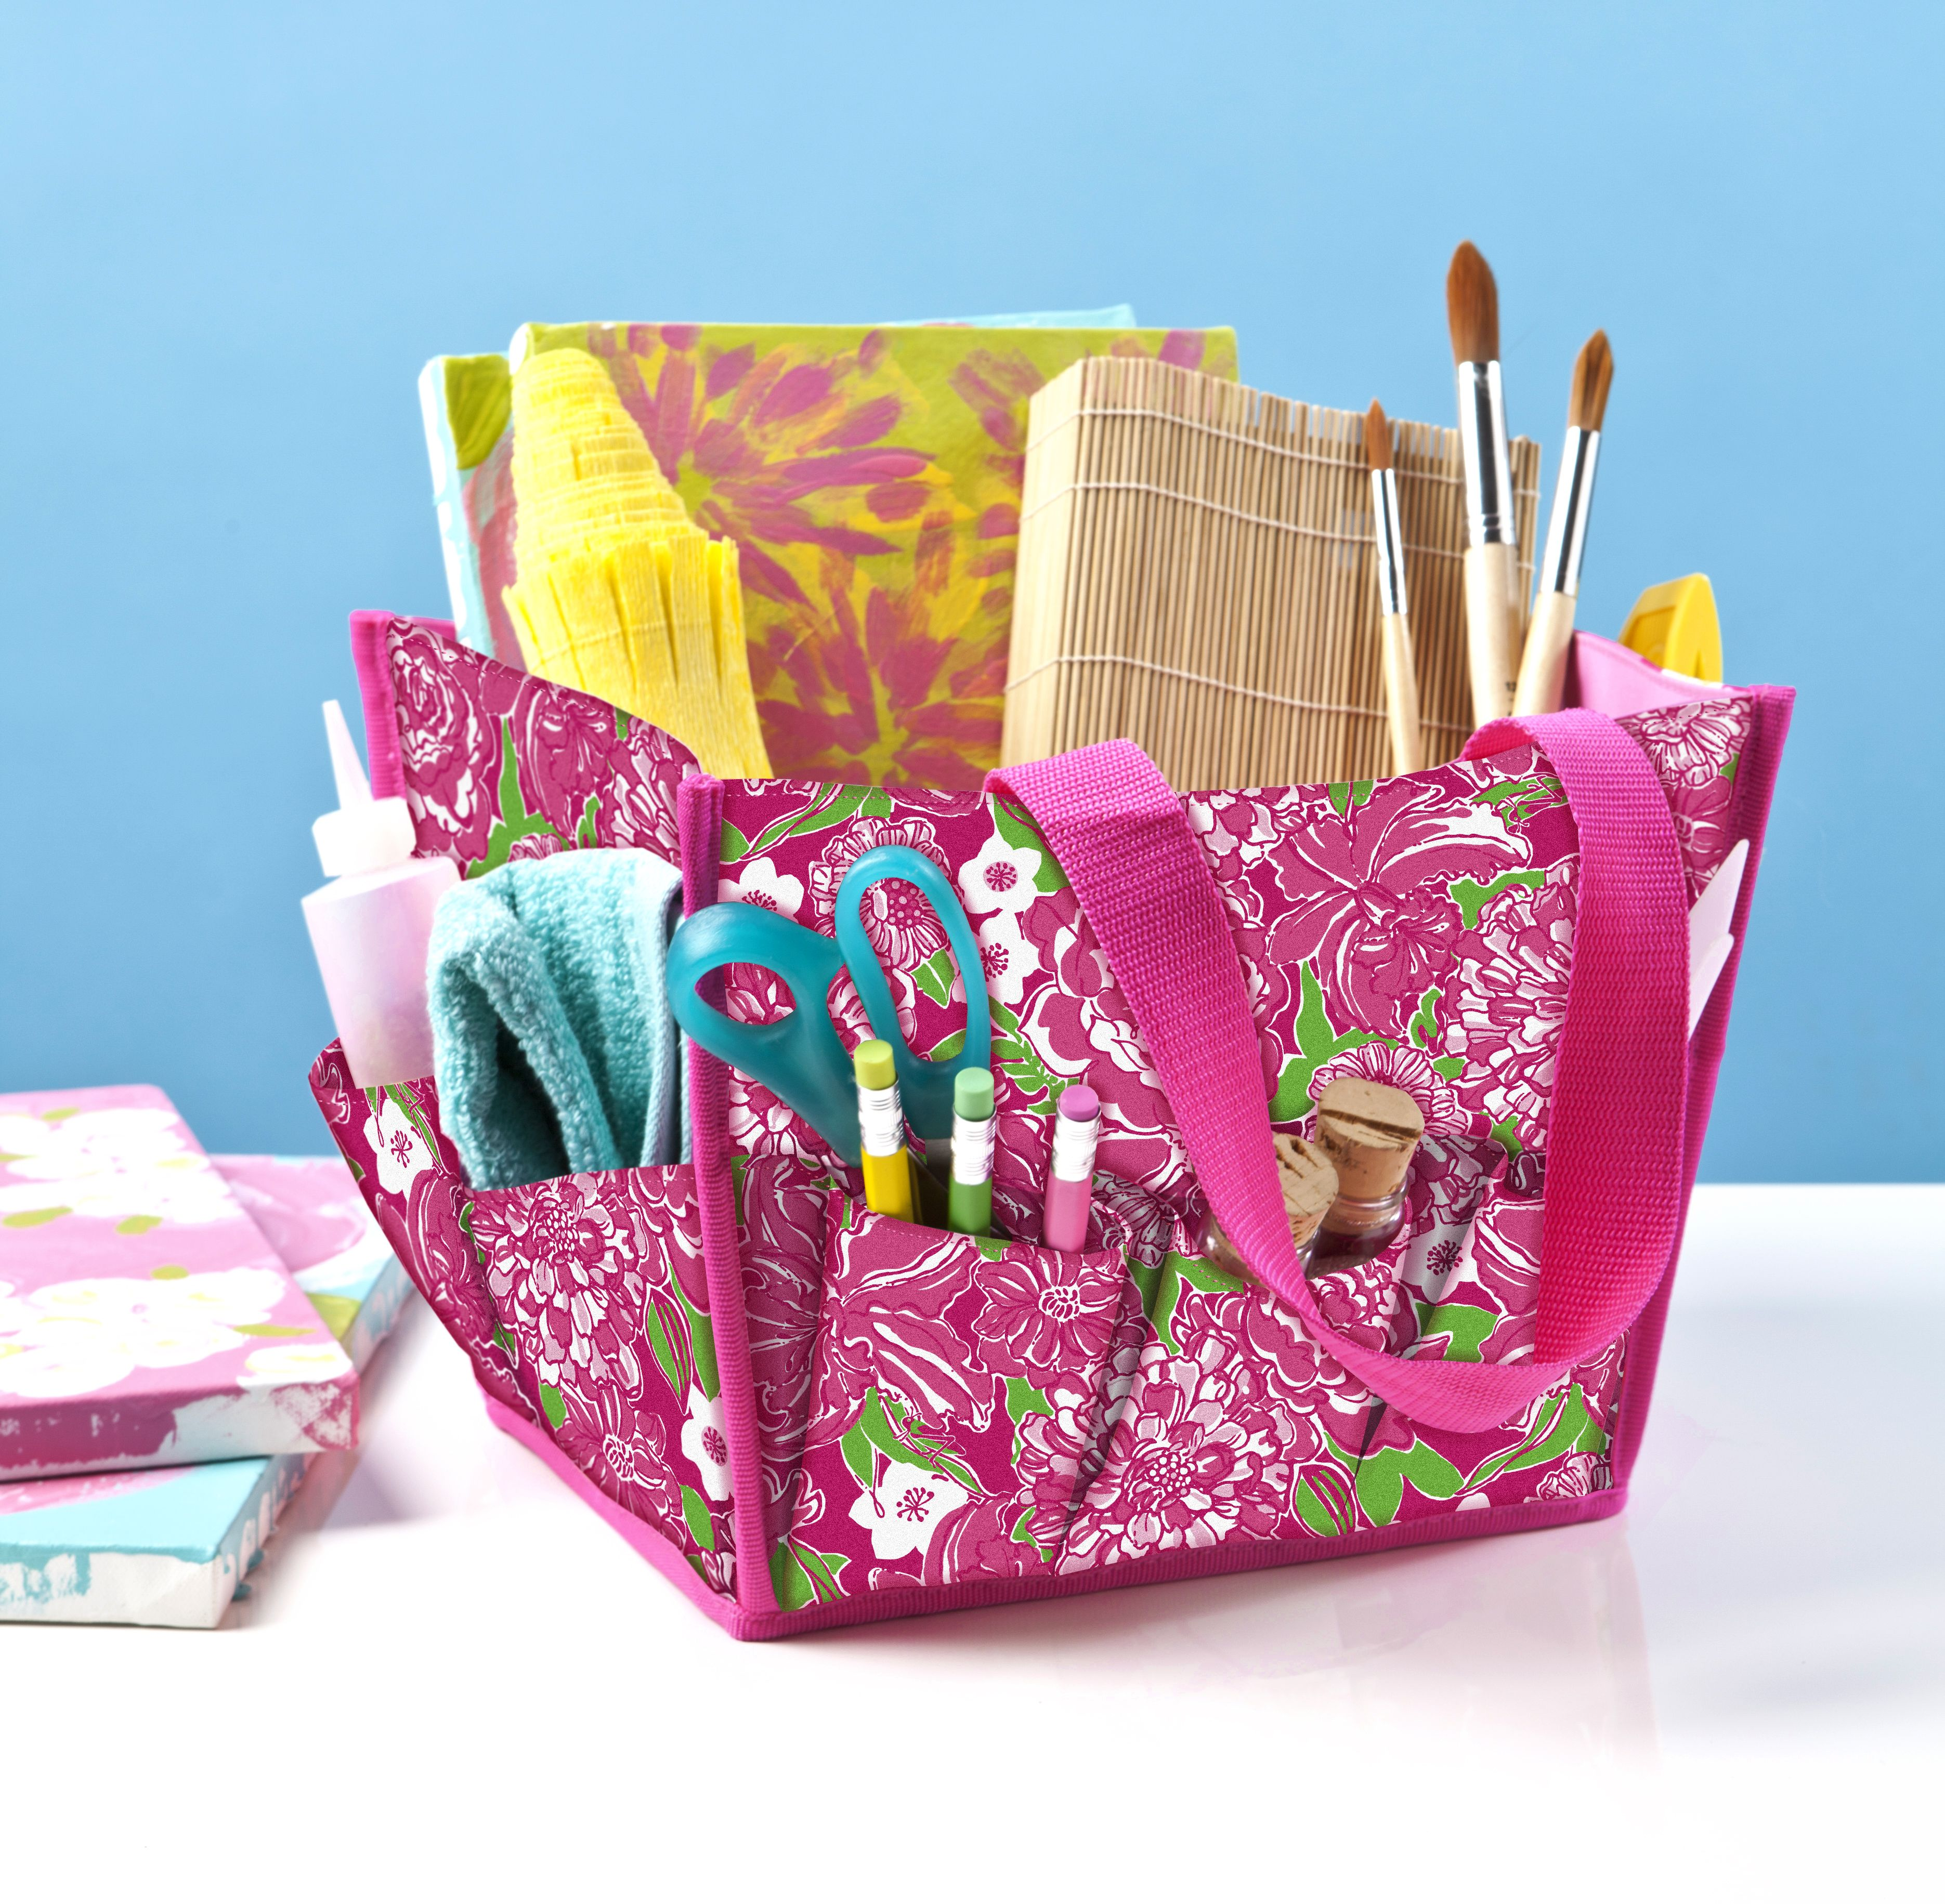 """Lilly Pulitzer Desk Caddy available later this month To enter: 1) Follow @garnethill and @lillypulitzer on Pinterest 2) Create a board titled """"Dream Dorm Room"""" 3) Add a minimum of 4 pins from garnethill.com including our Lilly Pulitzer Home Collection, and at least 2 items from lillypulitzer.com 4) Send us the link to your board at social@garnethill.com by July 27 See our board example: http://ghill.me/NCu8cU Official rules: http://ghill.me/wXYLie"""